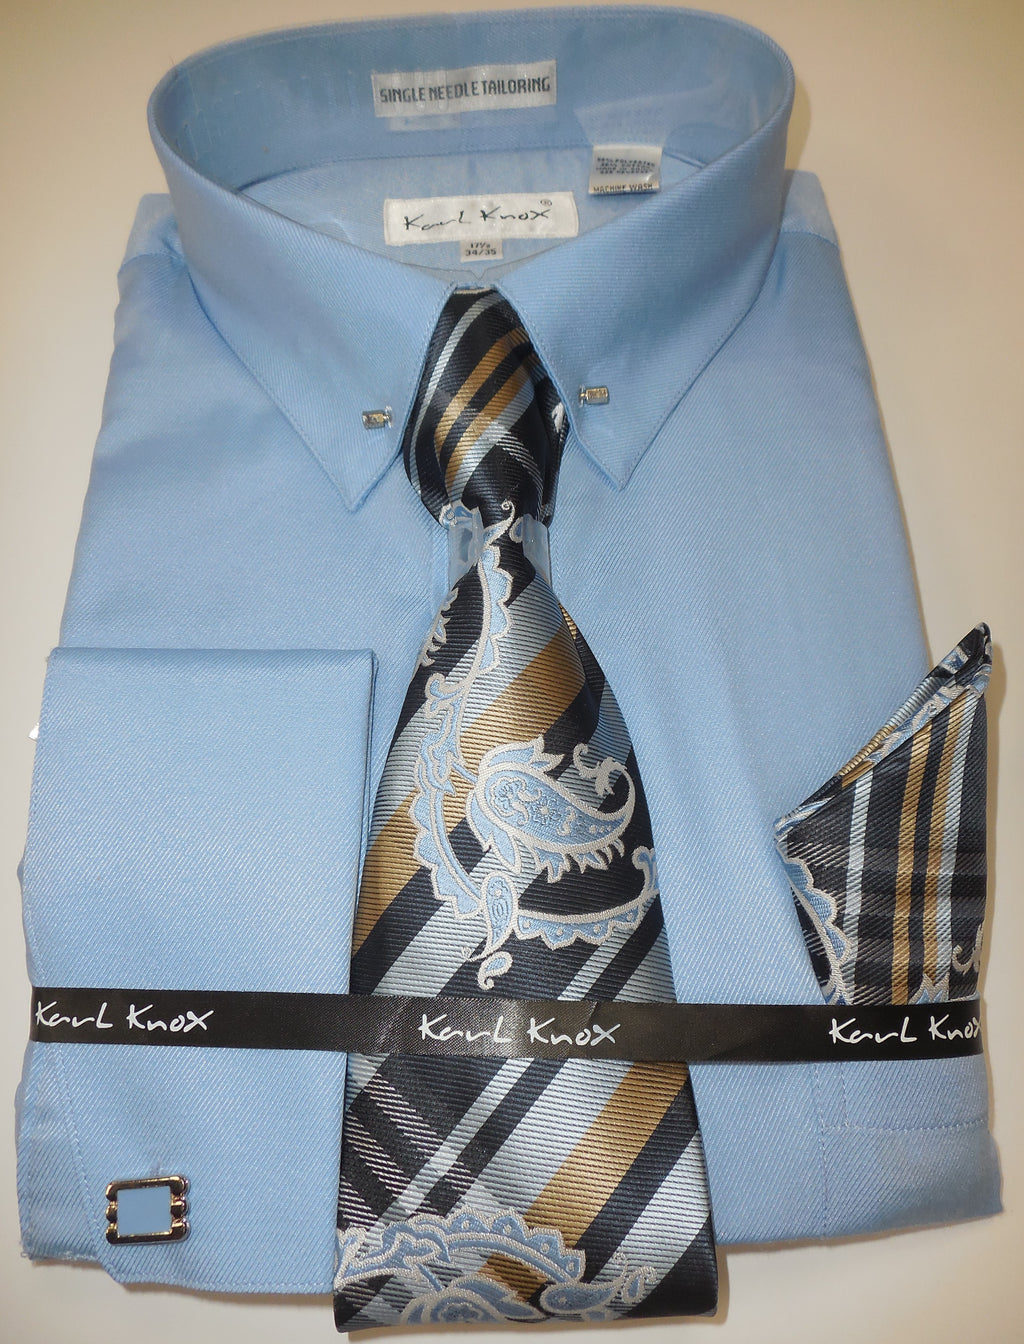 Mens Baby Blue, Light Blue Eyelet Pin Collar Bar French Cuff Dress Shirt Tie Set Karl Knox 4401